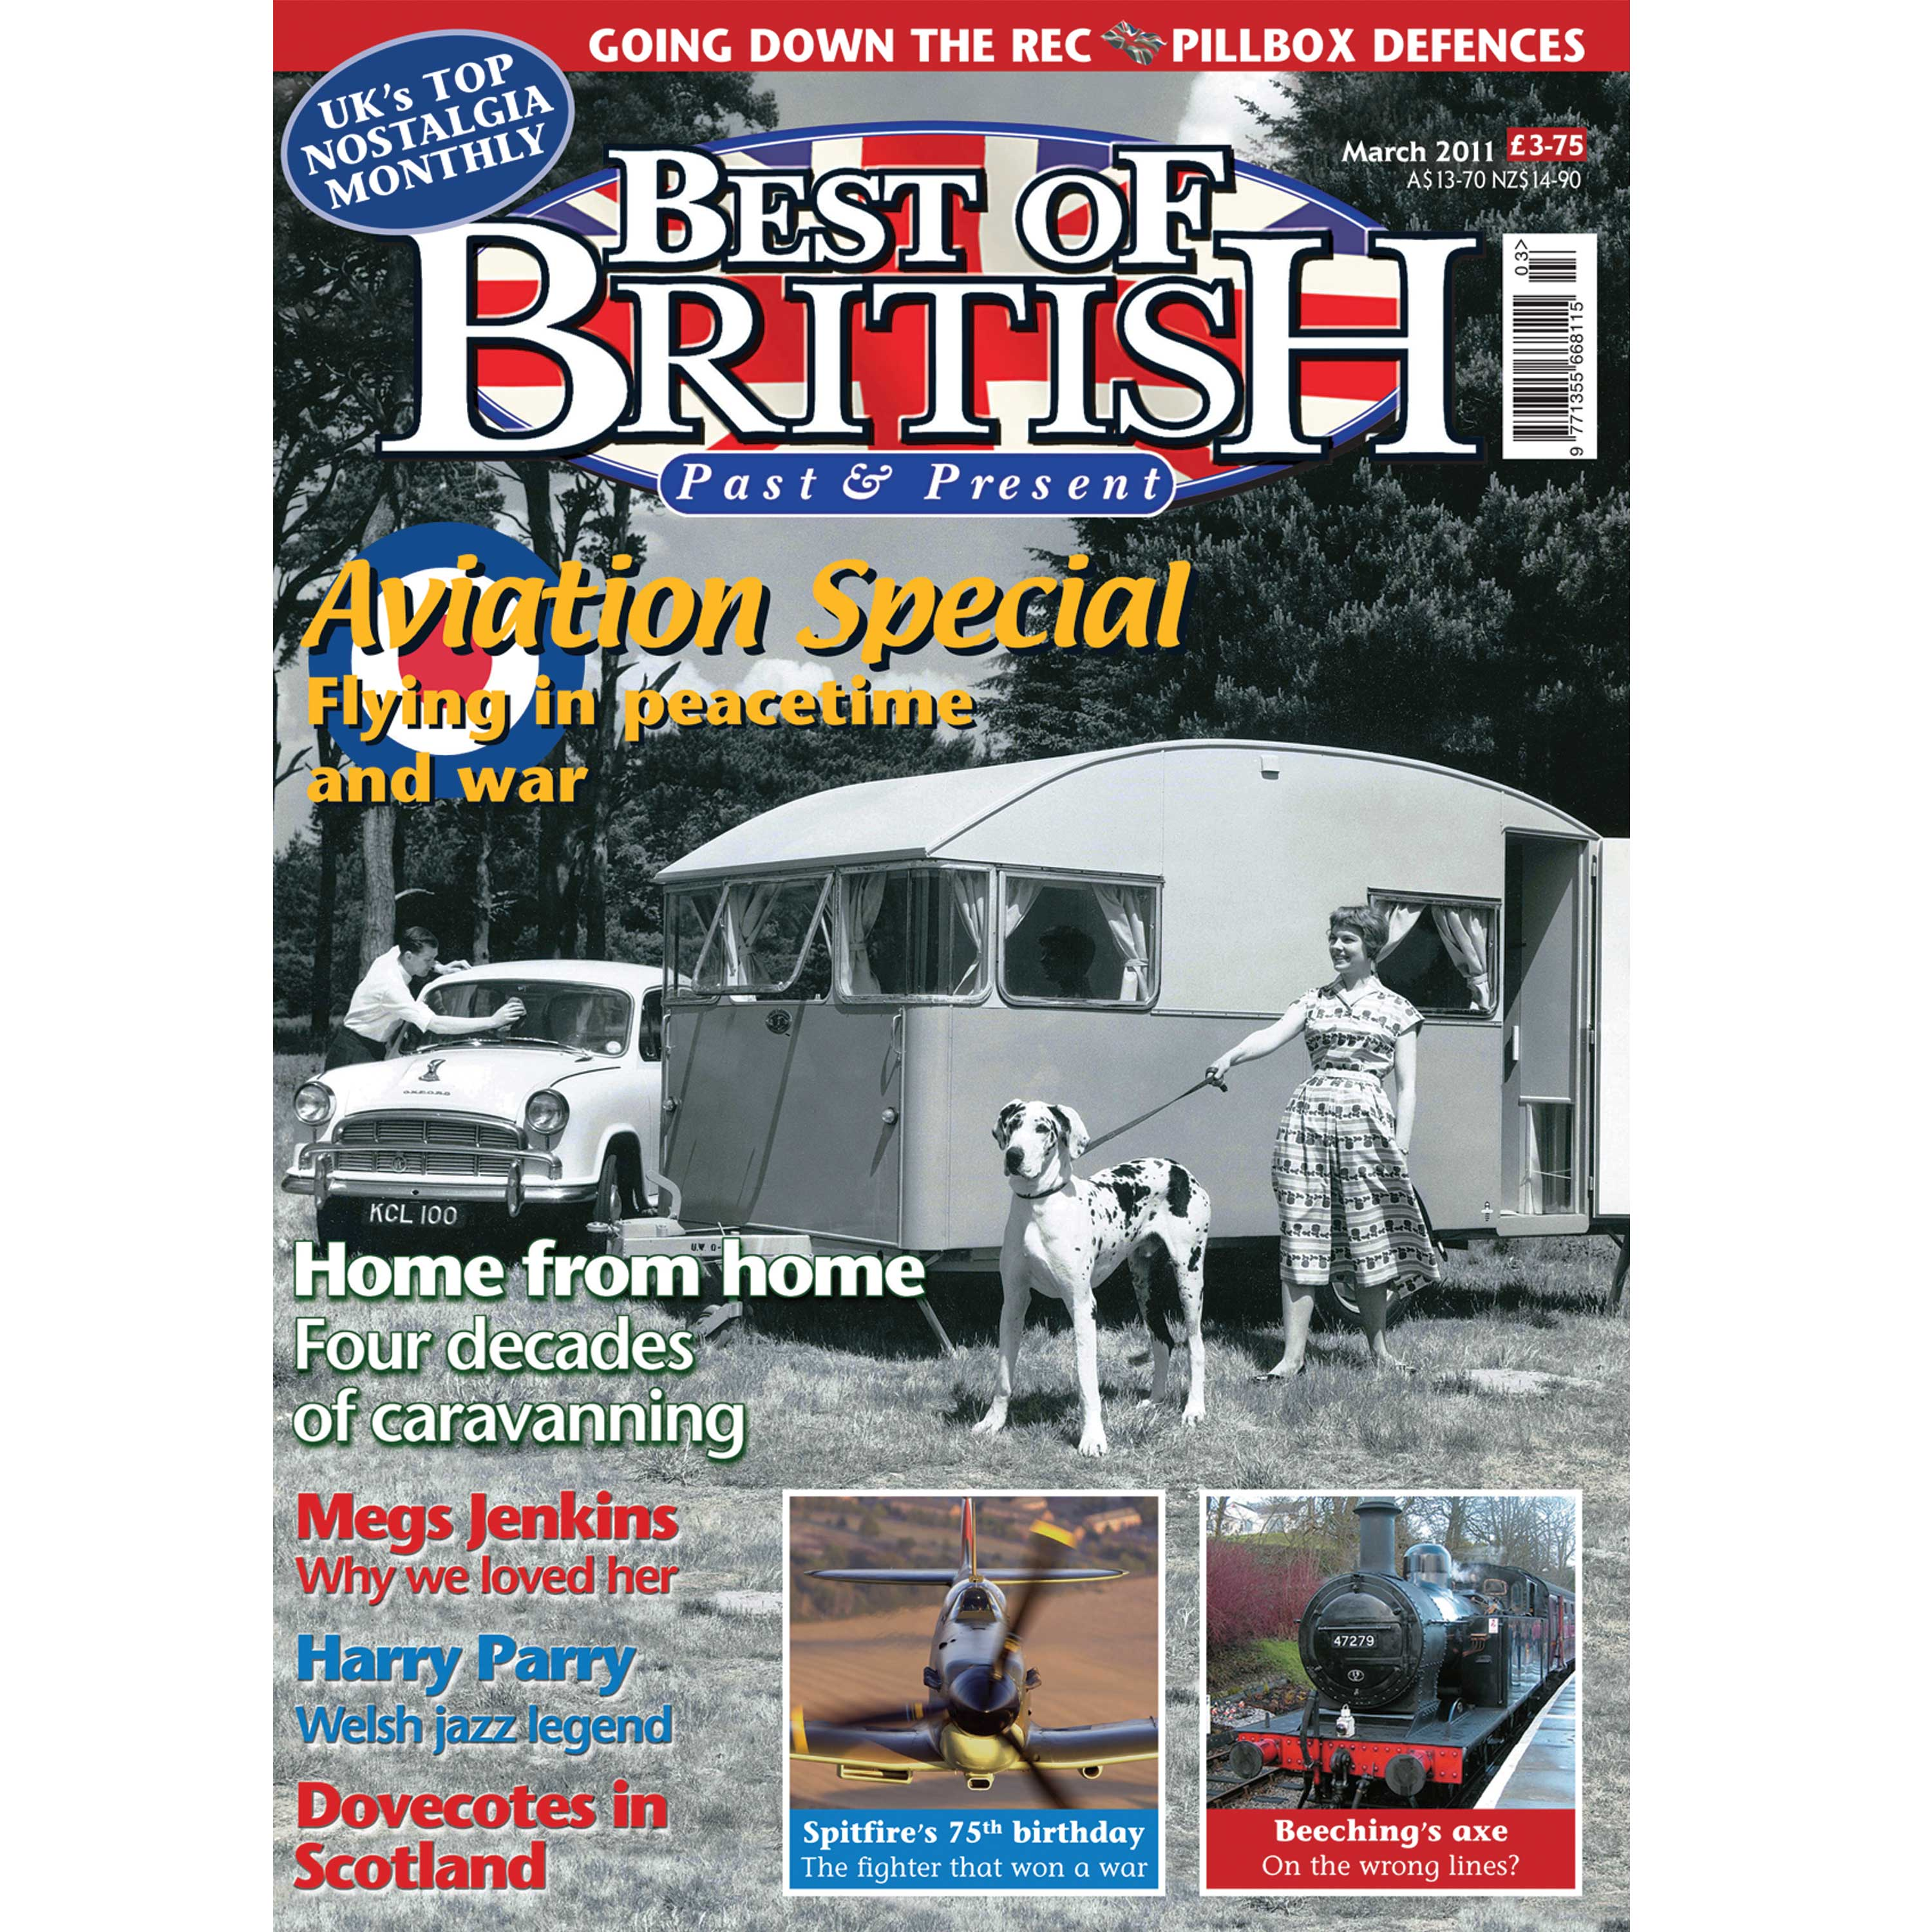 Issue 176 - MAR 2011